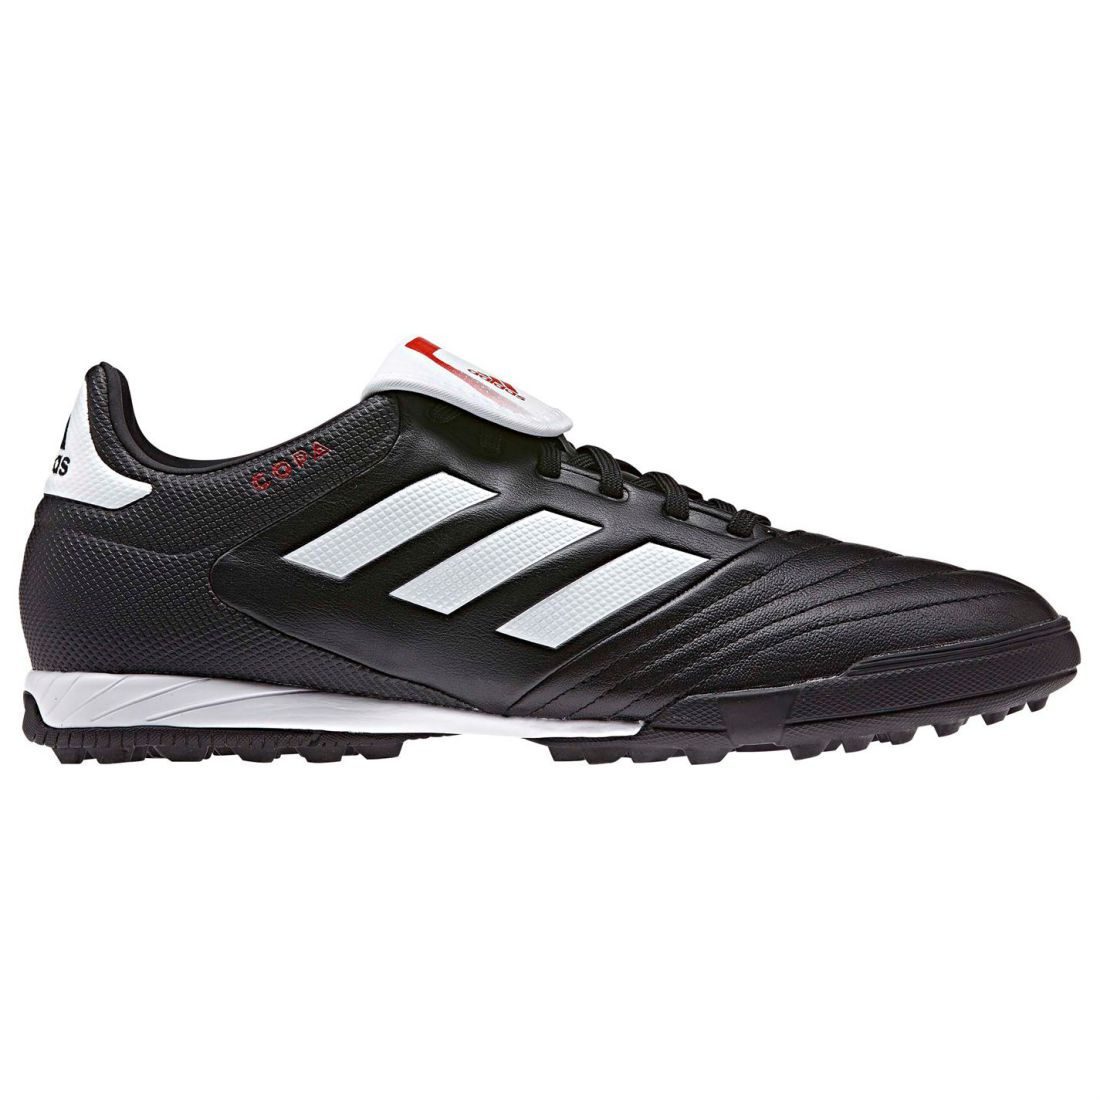 sports shoes e18d2 d8659 Image is loading adidas-Mens-Gents-Copa-17-3-Astro-Turf-